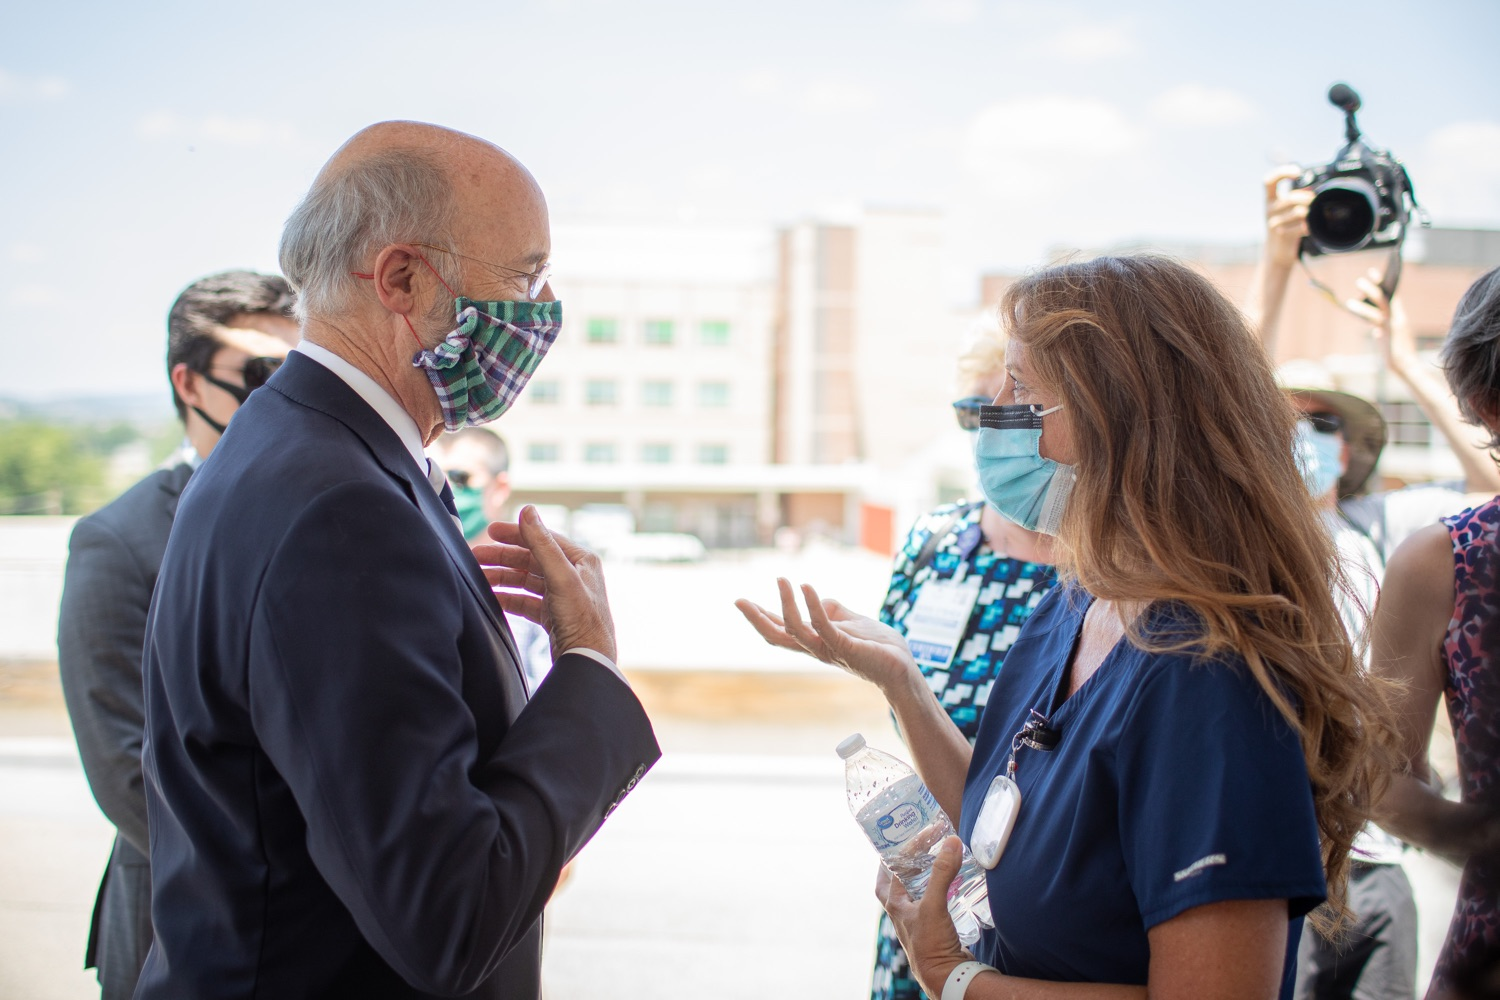 """<a href=""""https://filesource.wostreaming.net/commonwealthofpa/photo/18173_gov_wellspan_hospital_dz_03.jpg"""" target=""""_blank"""">⇣Download Photo<br></a>Pennsylvania governor Tom Wolf visiting with hospital staff and visitors.  With a recent rise in COVID cases and subsequent additional targeted mitigation efforts put in place, Governor Tom Wolf today visited WellSpan York Hospital to thank staff and emphasize why mask-wearing and social distancing are necessary and effective to fight the spread of COVID-19.  Harrisburg, PA  July 21, 2020"""